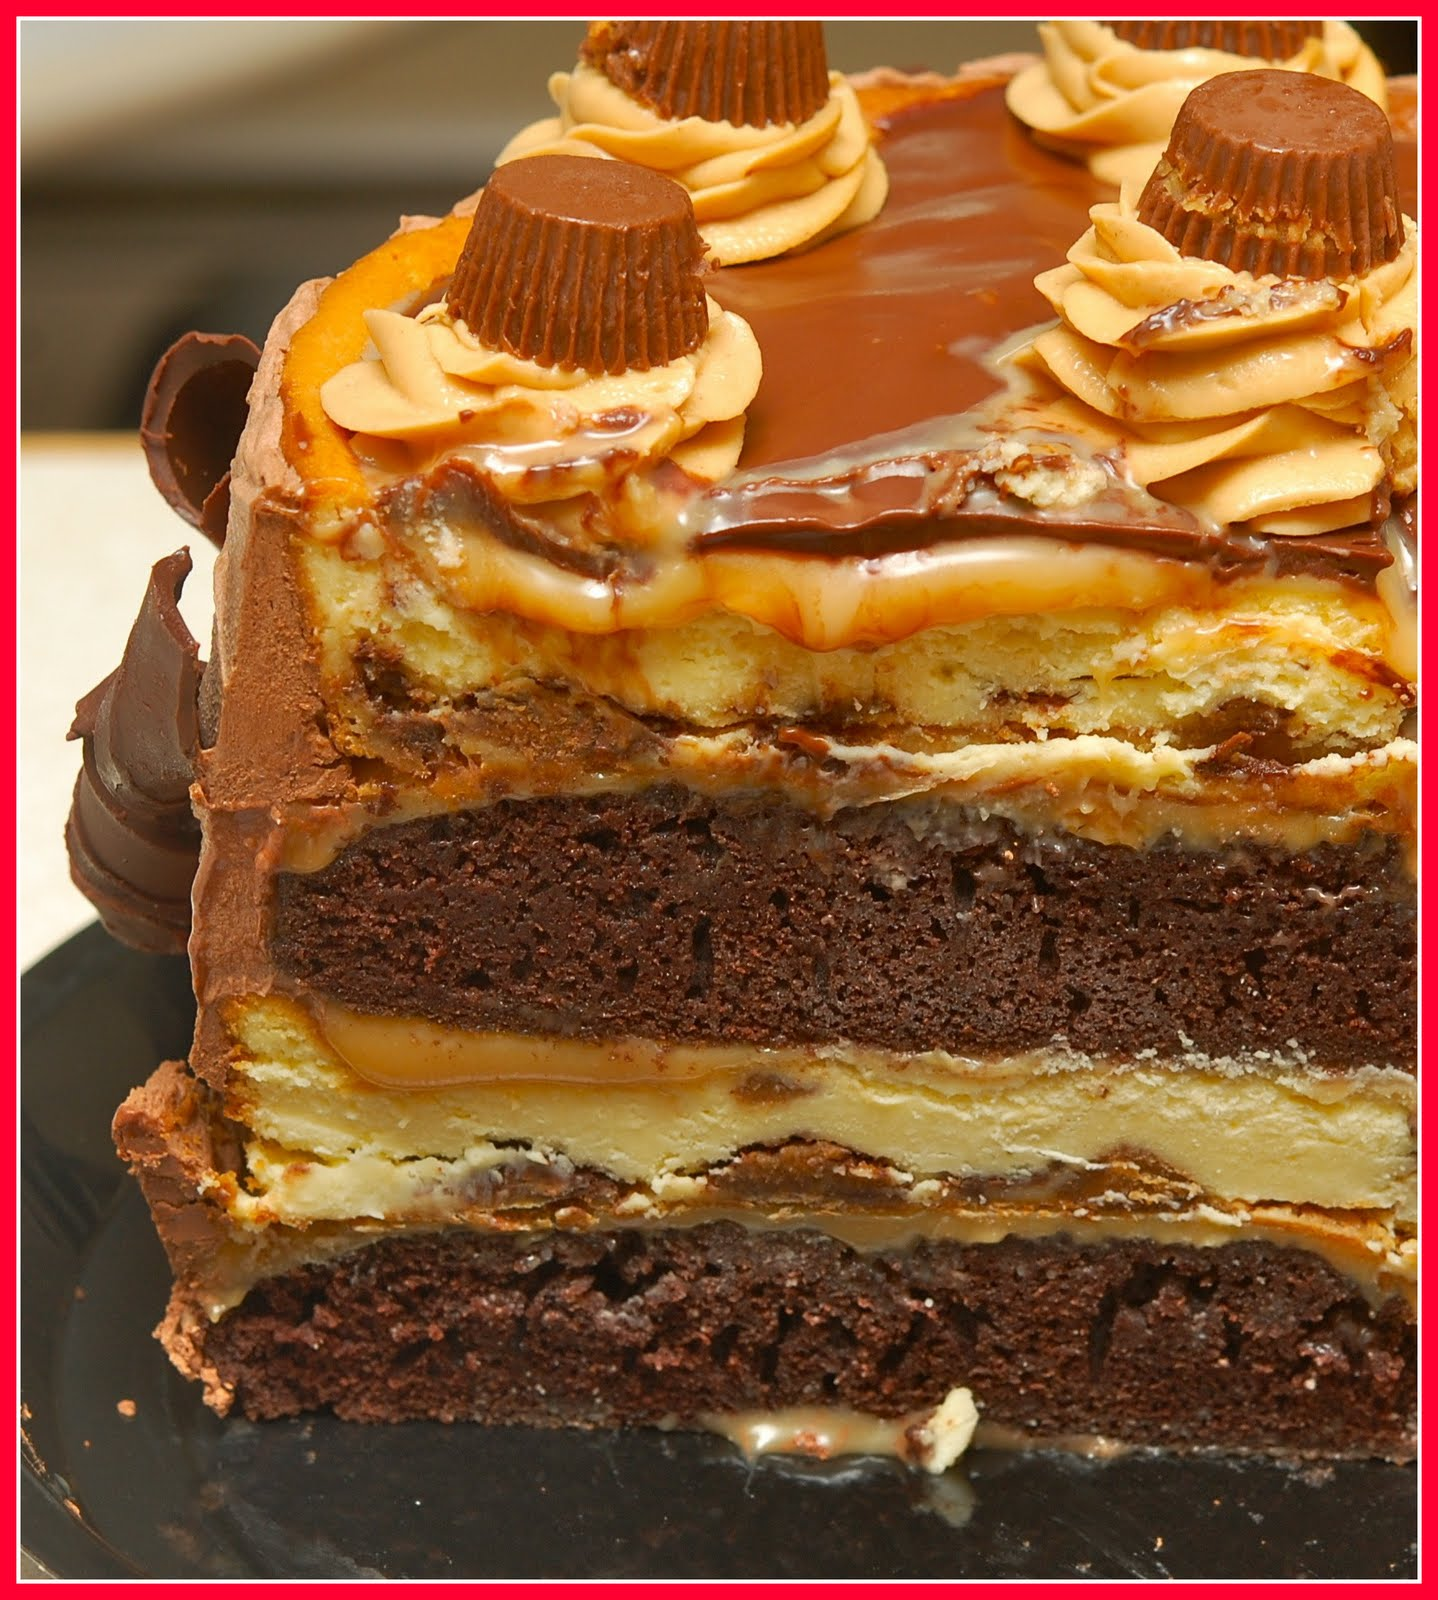 ... PEANUT BUTTER CHOCOLATE CARAMEL CHEESECAKE!!!! - Hugs and Cookies XOXO